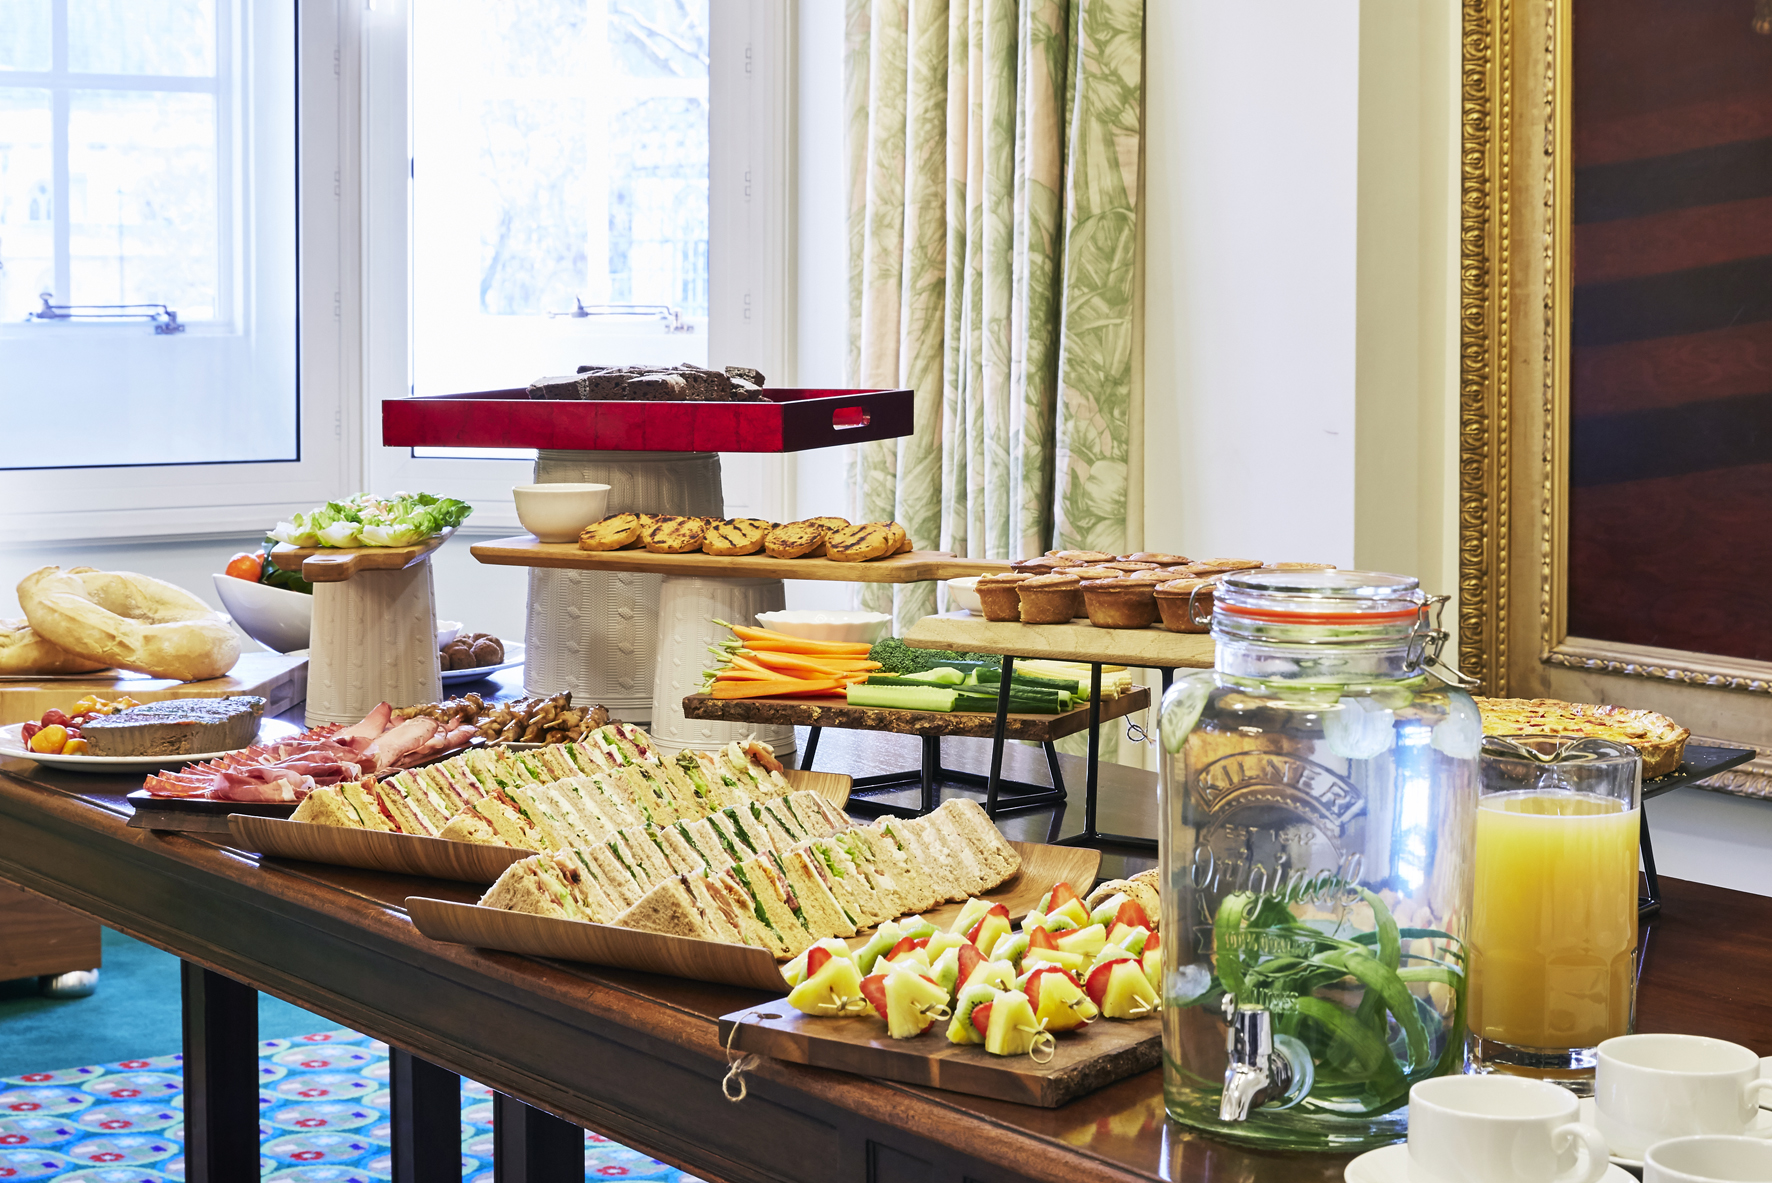 Buffet on table